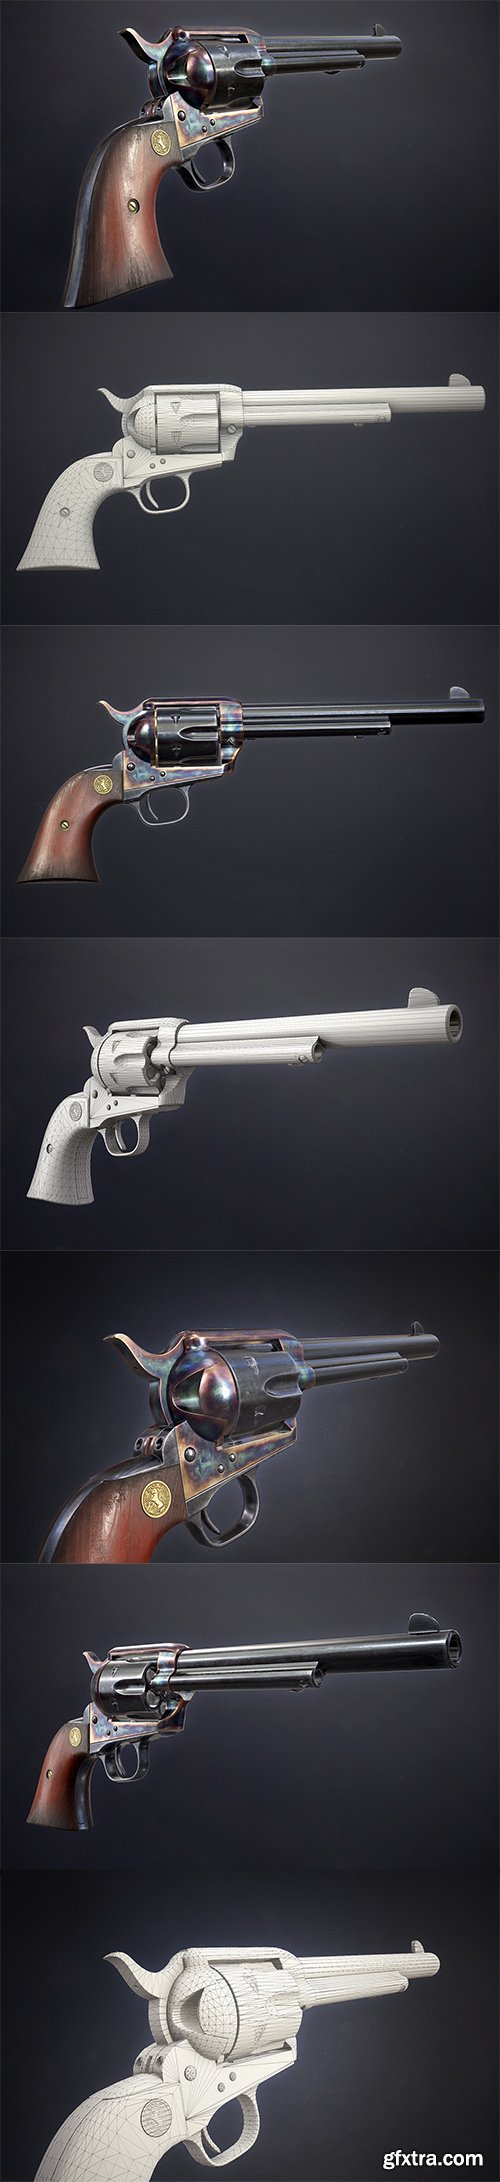 Cubebrush - Colt Single Action Army - Peacemaker